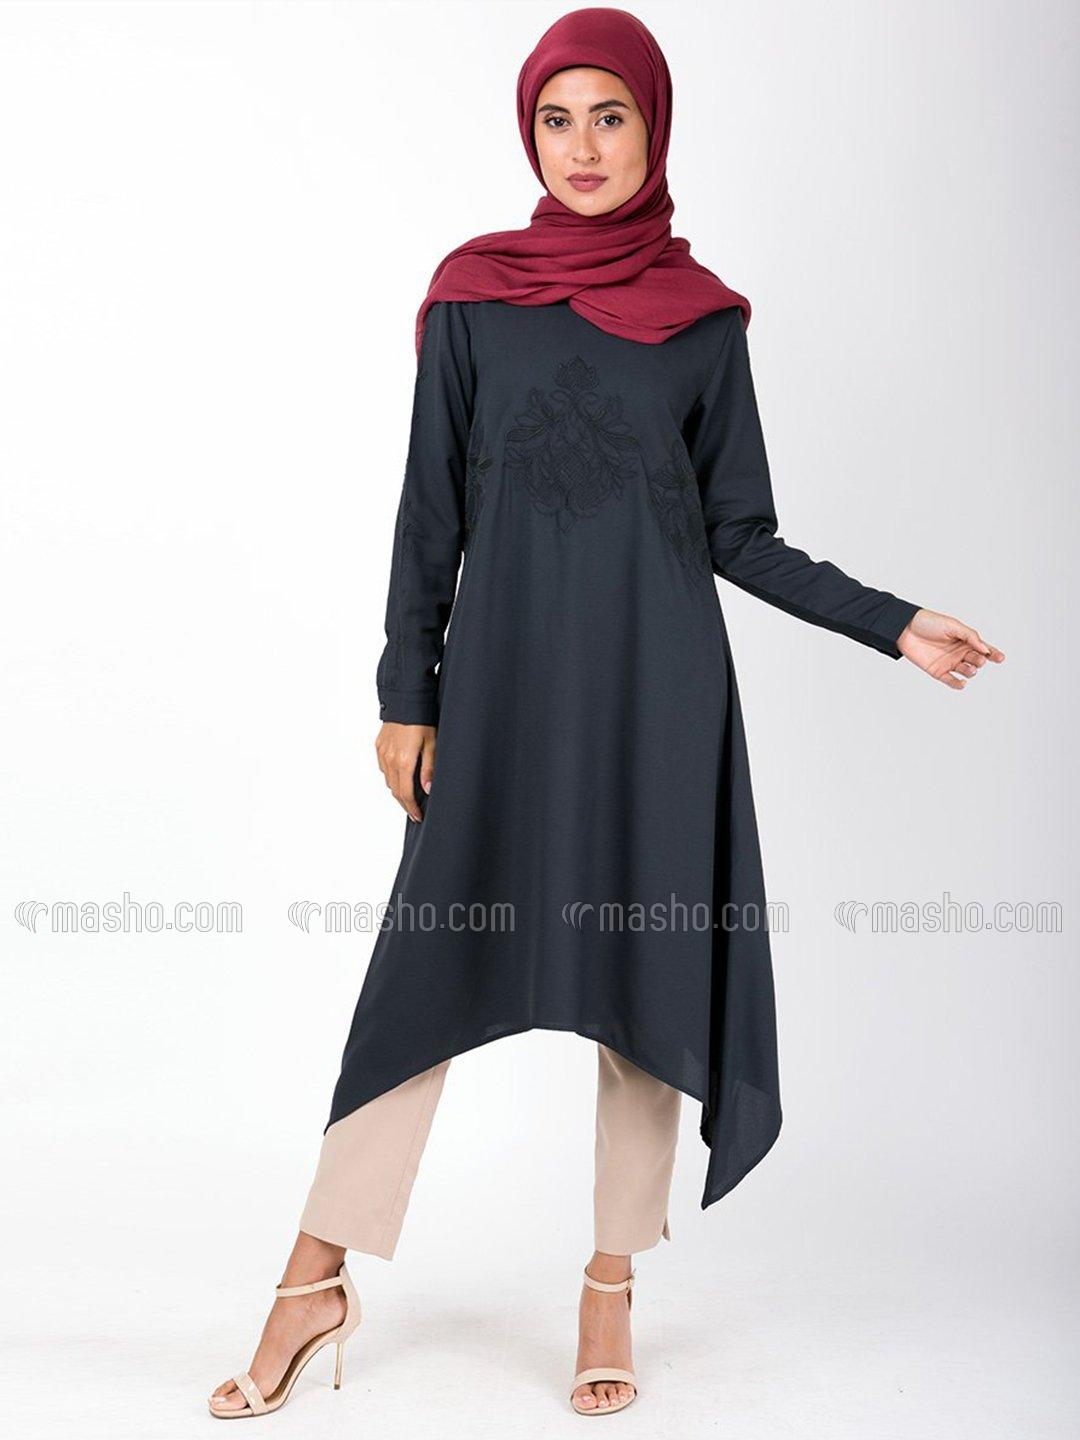 100% Summer Cool Polyester Midi Dress With Handkerchief Embroidered In Black